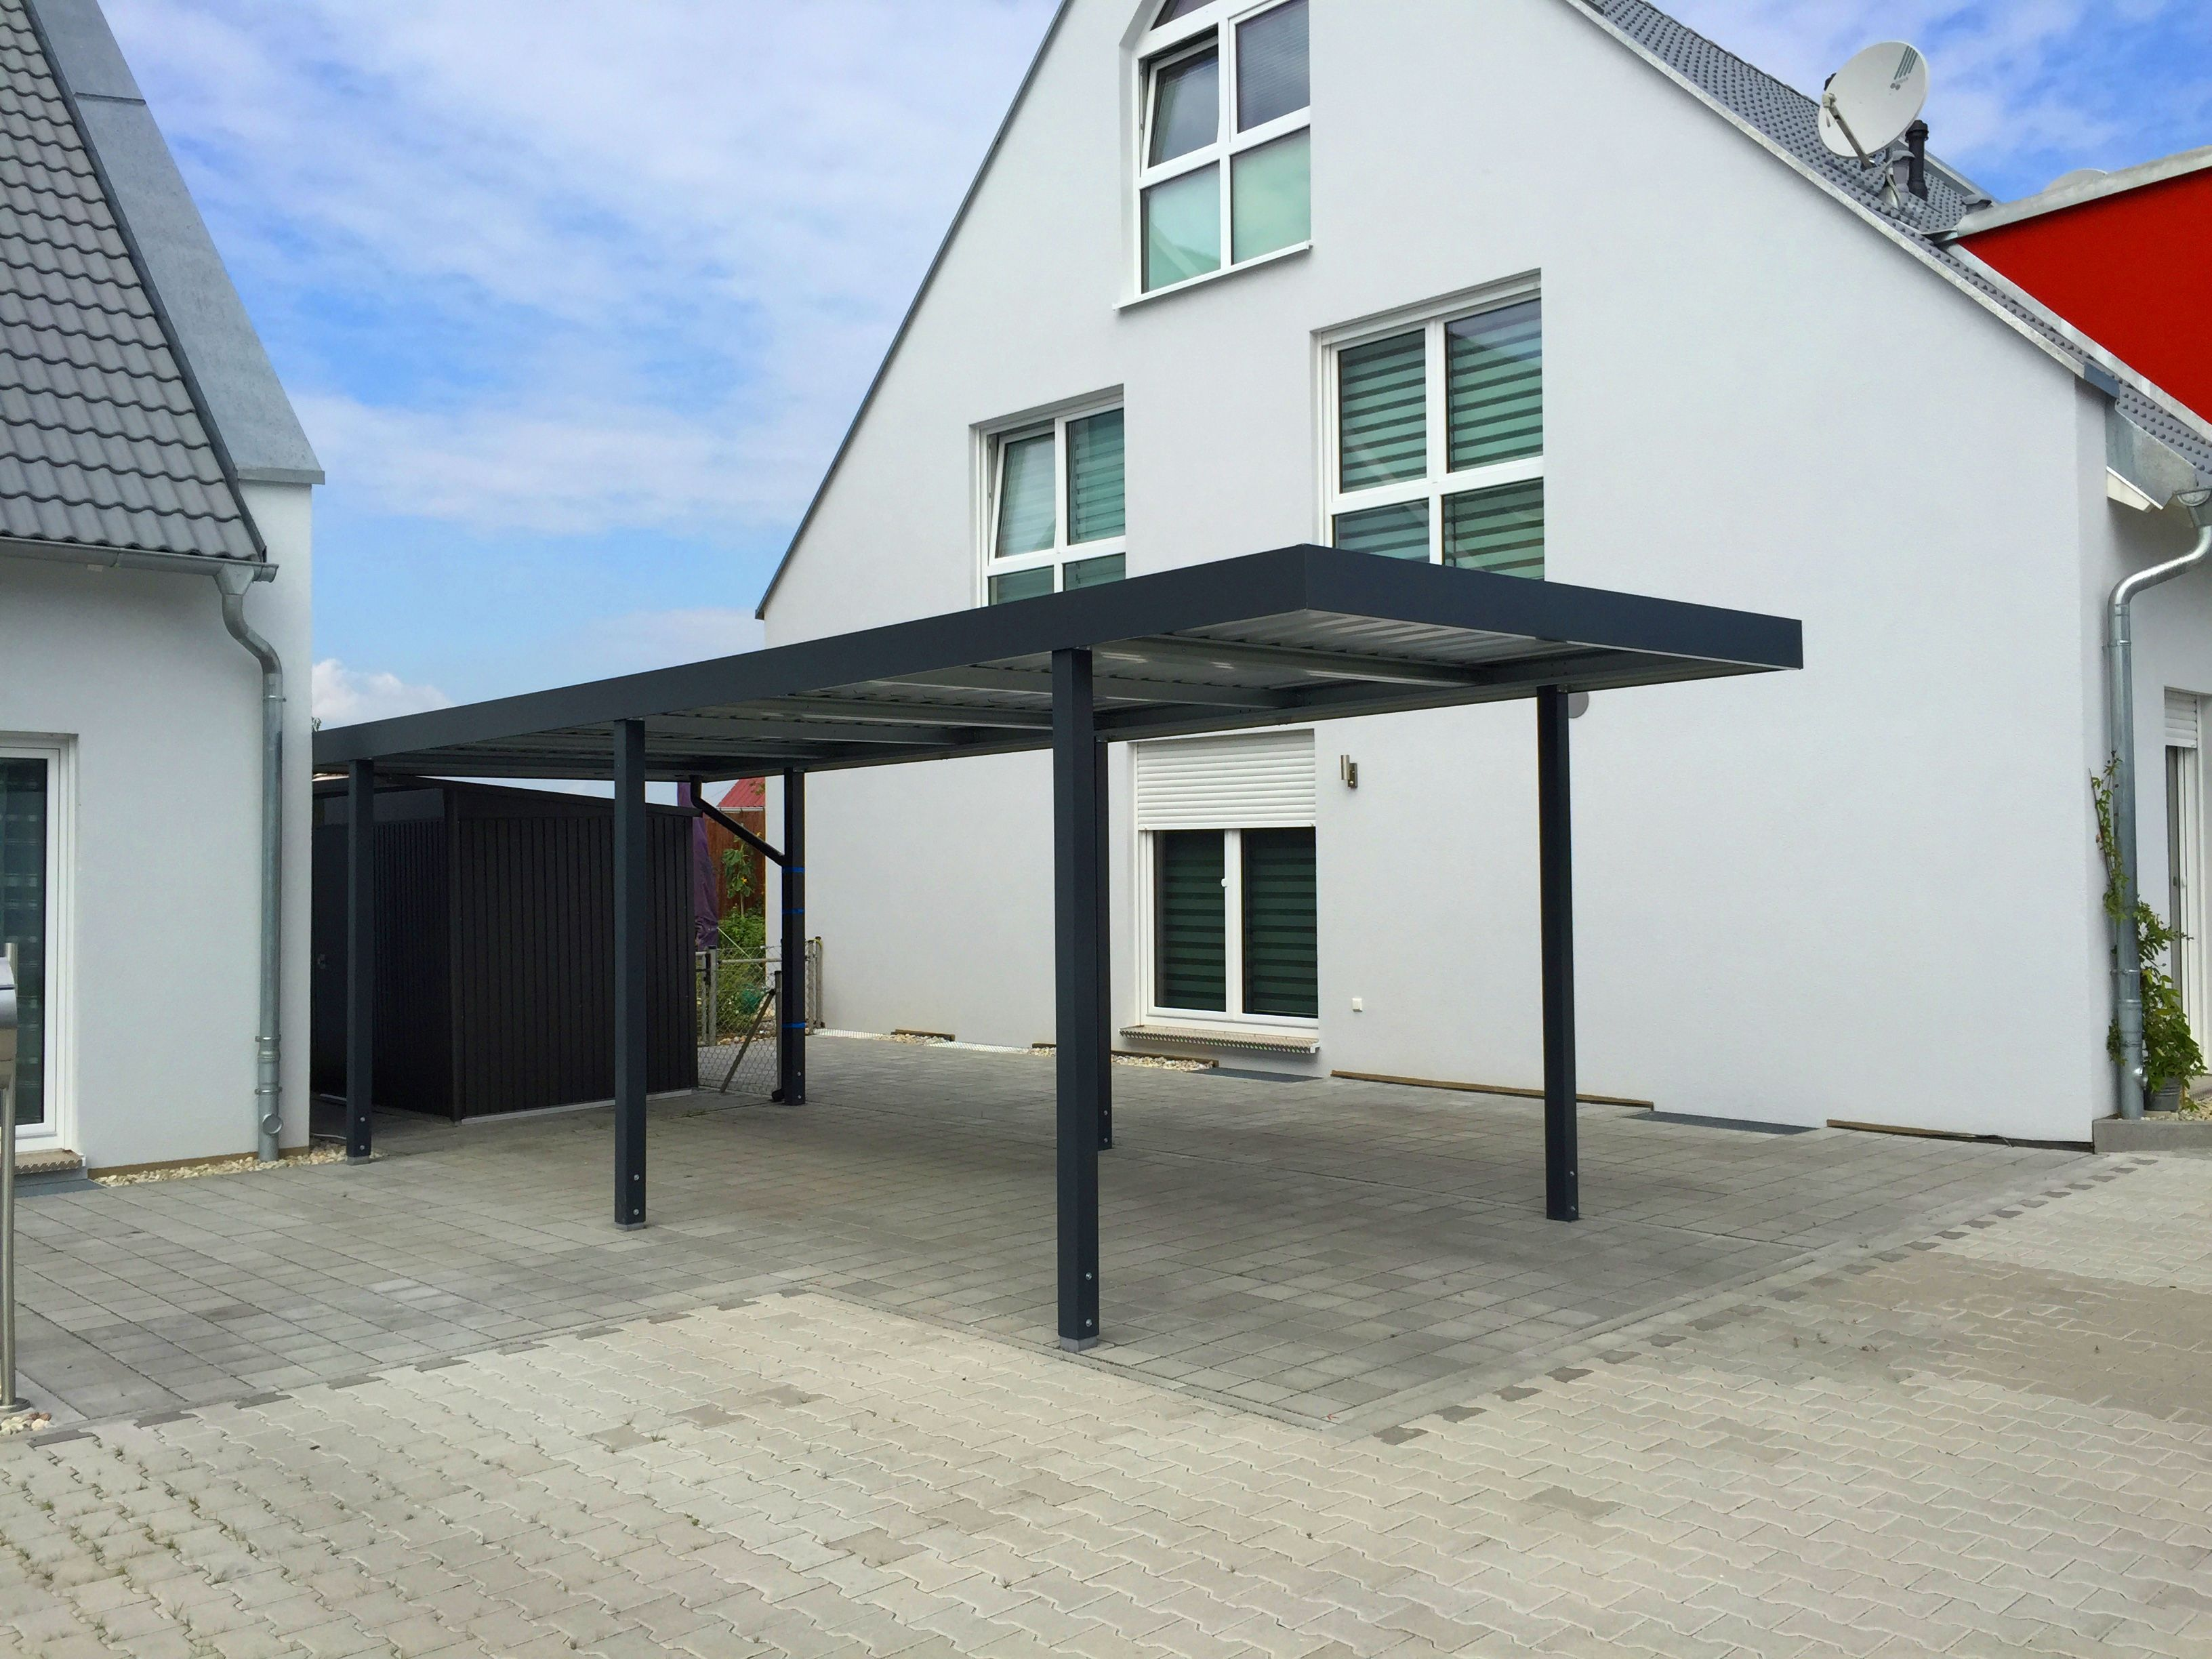 myport einzelcarport in anthrazit schlicht und elegant carport carports doppelcarport. Black Bedroom Furniture Sets. Home Design Ideas